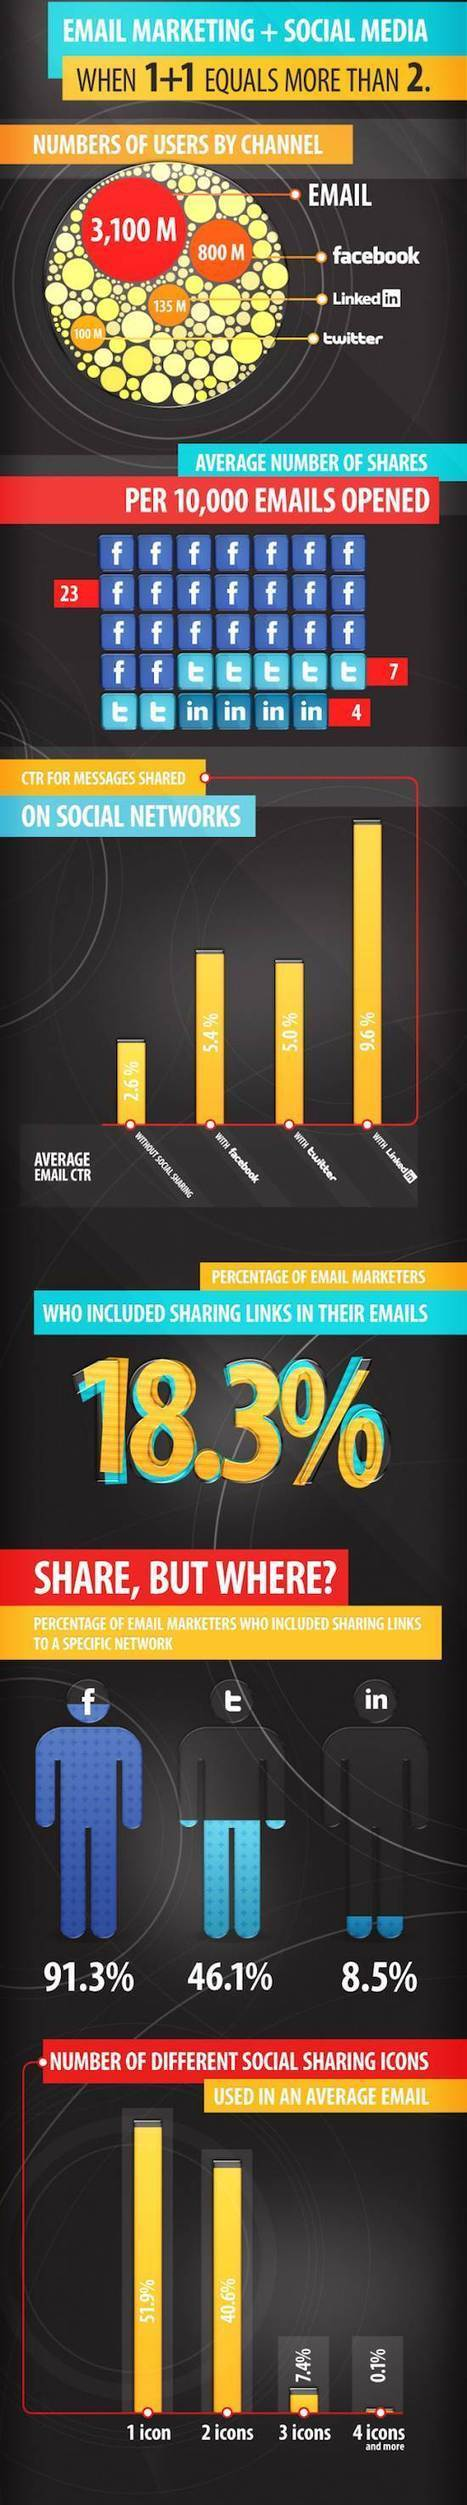 Social Sharing and Email Marketing - Infographic | Digital Marketing B2C | Scoop.it